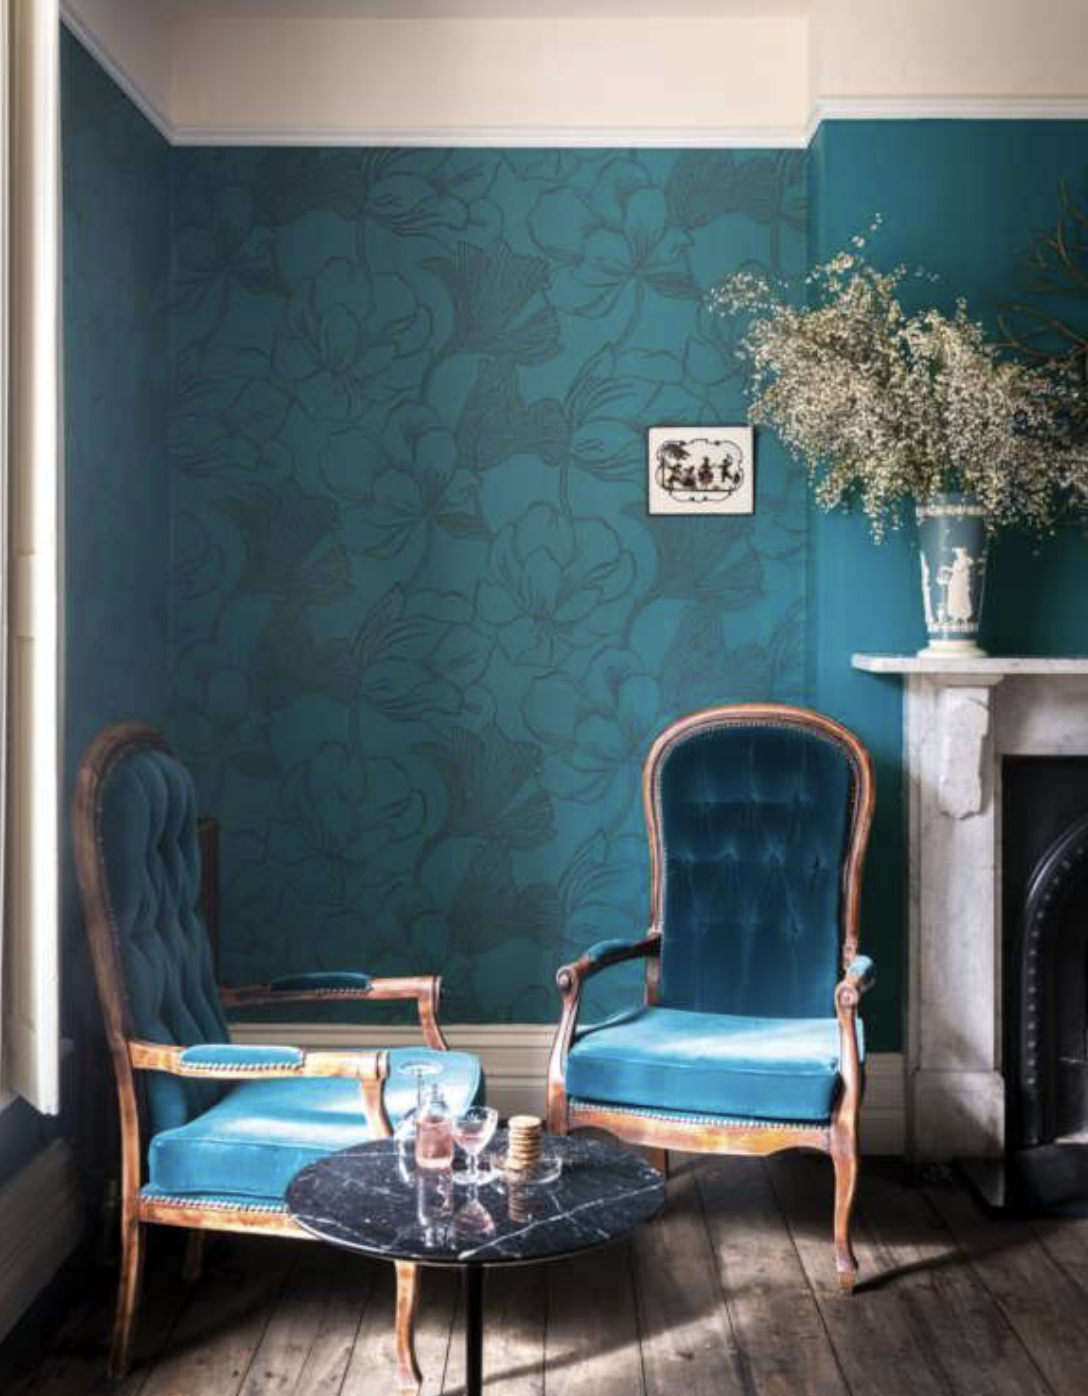 Farrow & Ball wallpaper is made using the company's paint on paper. Recyclable as paper